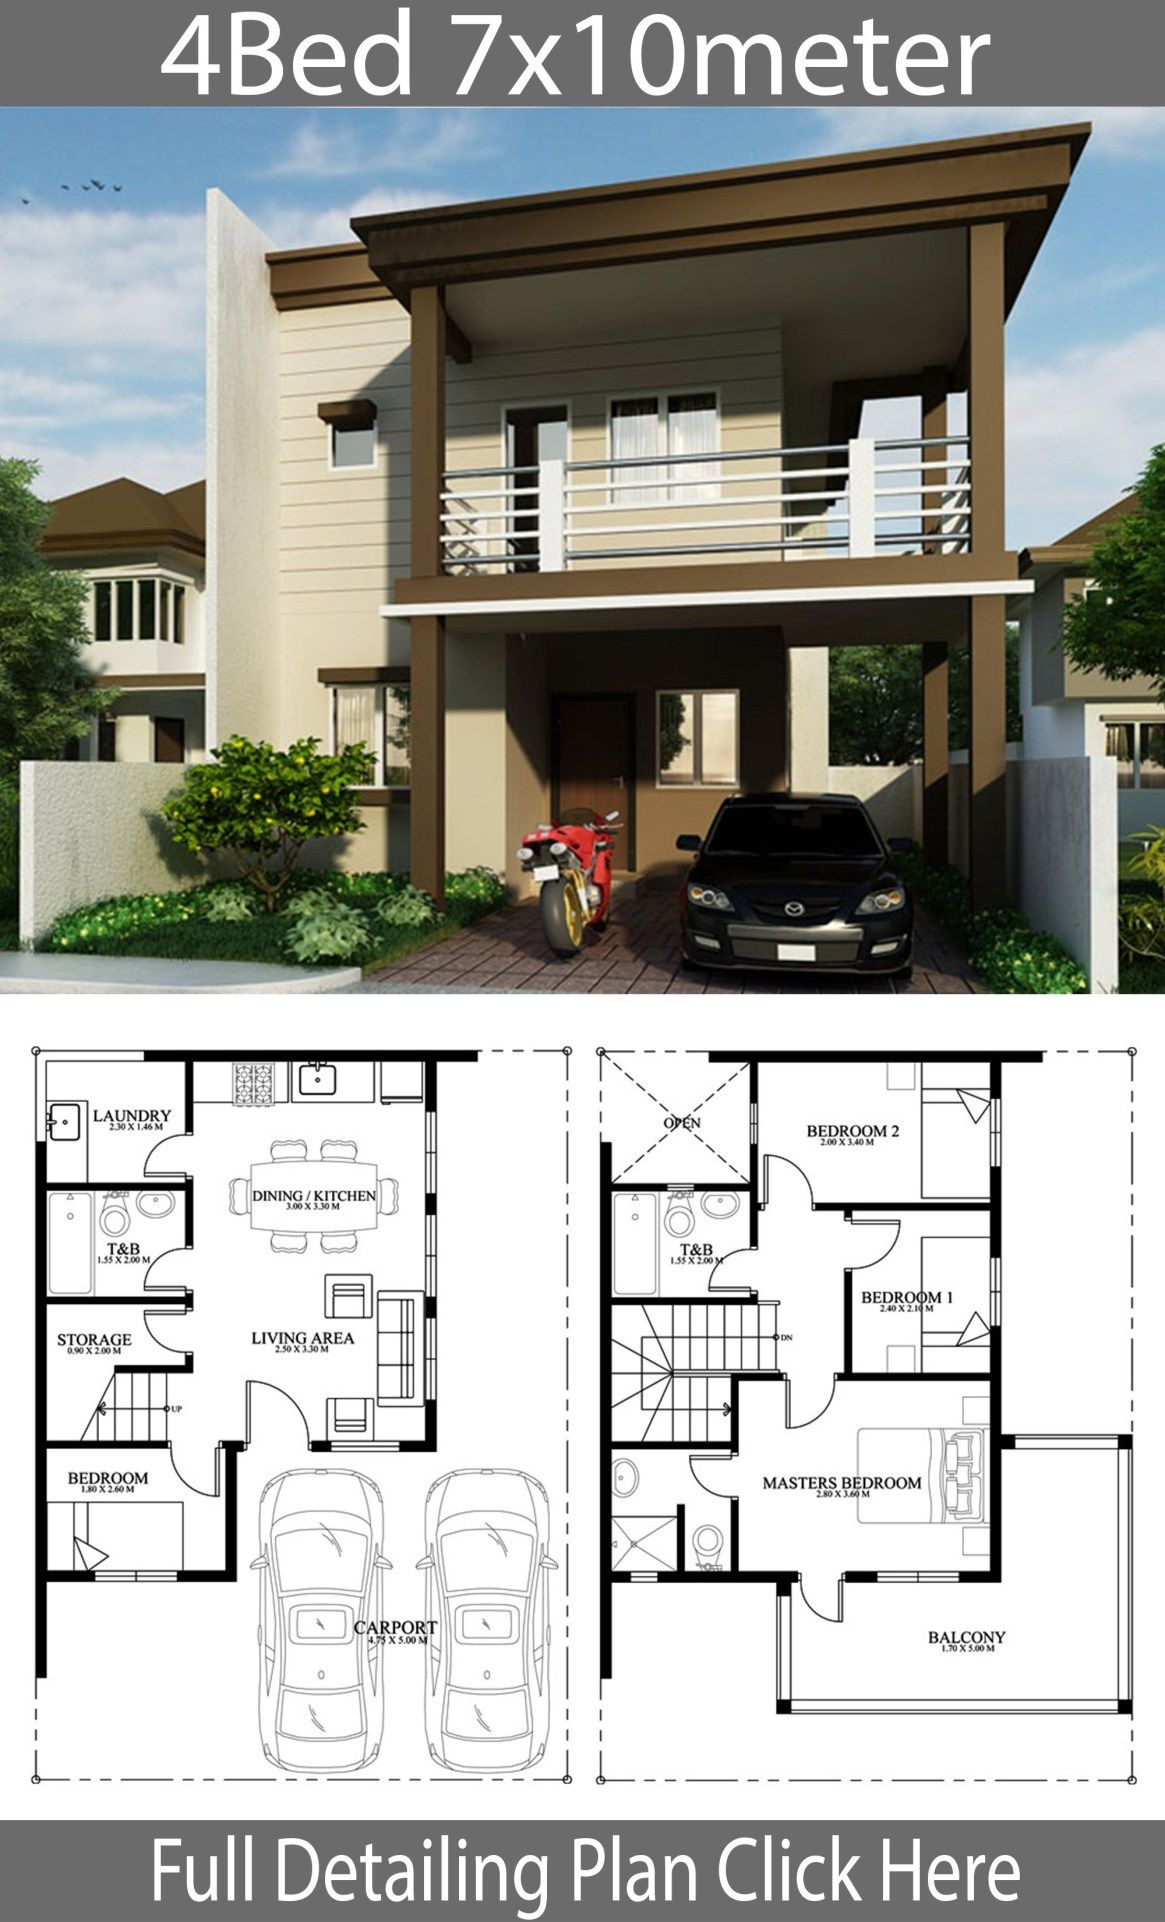 Home Design Plan 7x10m With 4 Bedrooms Home Design With Plansearch Model House Plan House Front Design Small House Design Plans